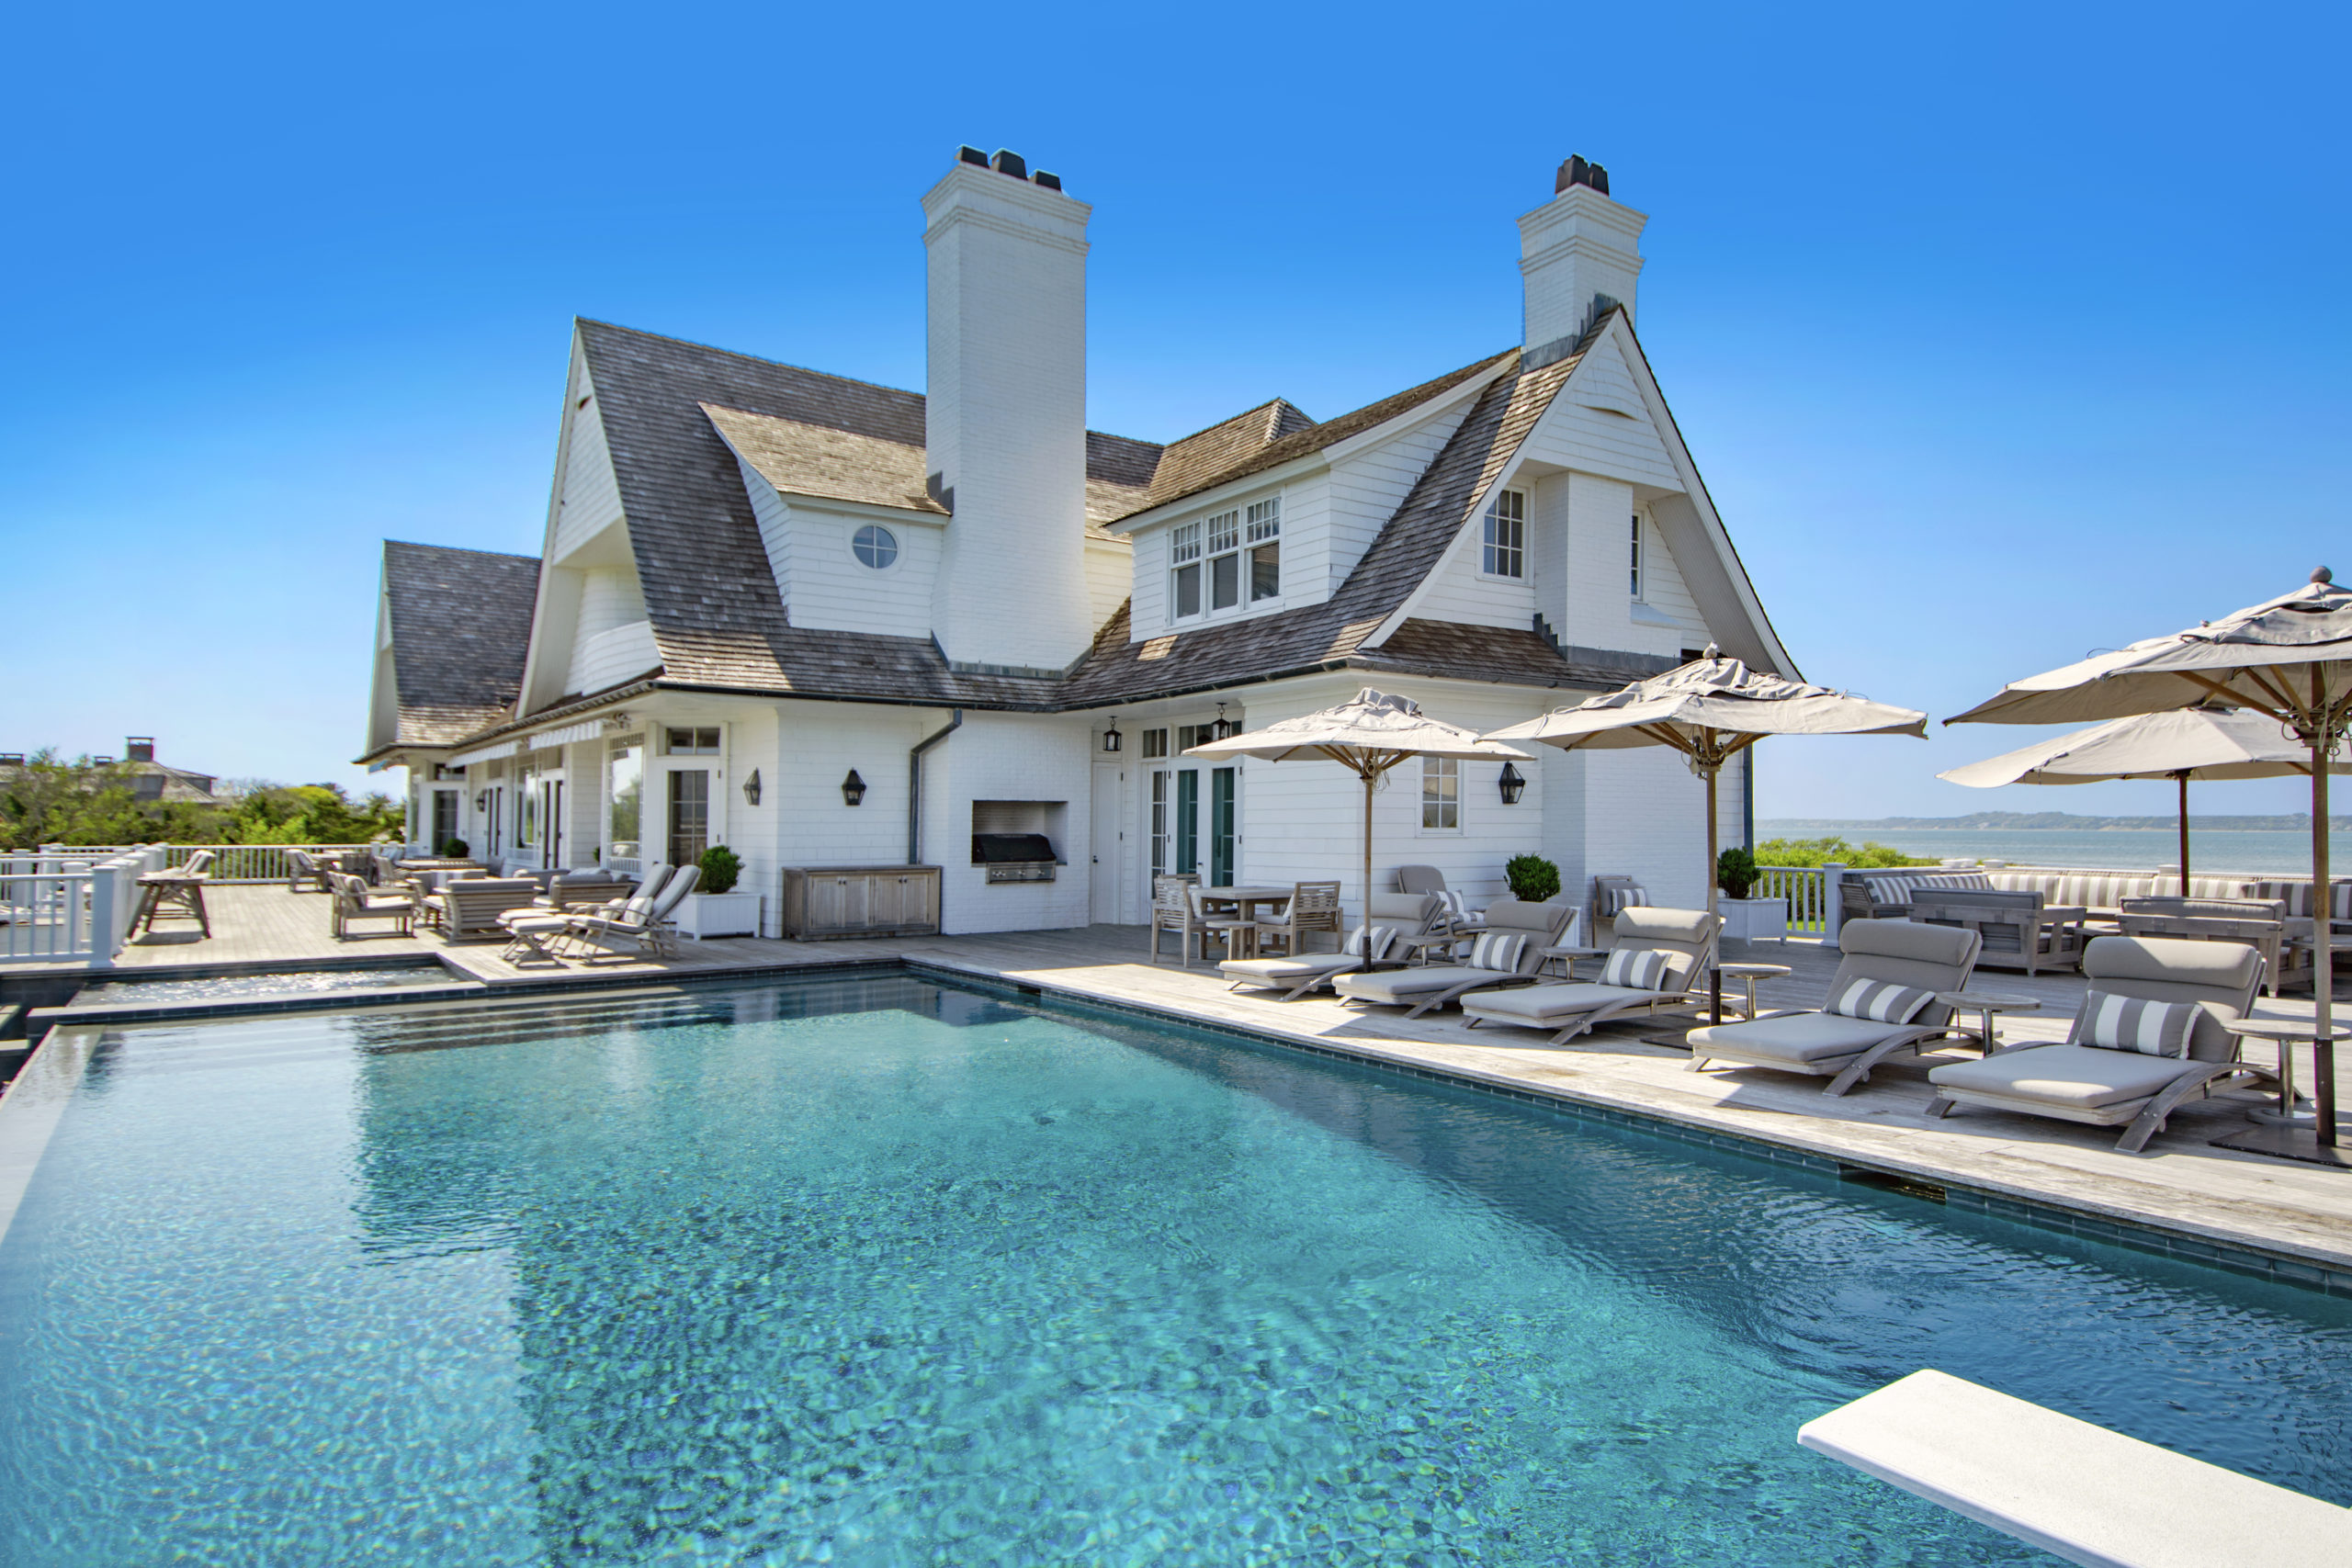 1050 Meadow Lane in Southampton Village sold for $40,910,000 in January 2020.